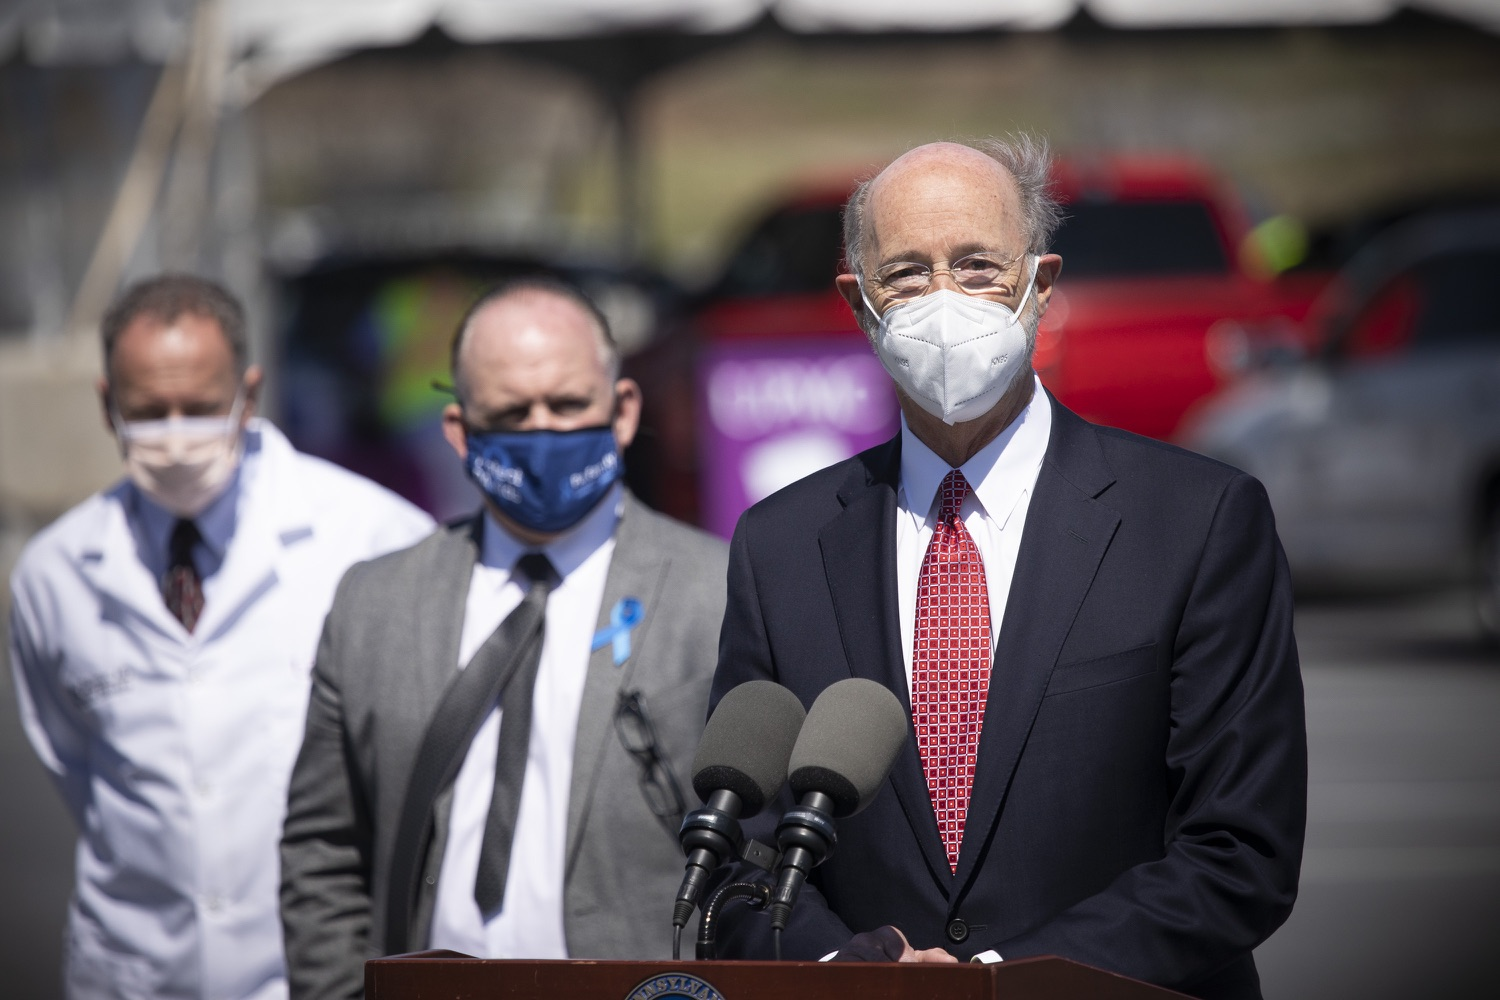 """<a href=""""https://filesource.wostreaming.net/commonwealthofpa/photo/18631_gov_hacc_vaccine_dz_017.jpg"""" target=""""_blank"""">⇣Download Photo<br></a>Pennsylvania Governor Tom Wolf speaking with the press.  Governor Wolf today visited the COVID-19 drive-thru mass vaccination clinic for Dauphin County residents at Harrisburg Area Community College. The drive-thru clinic was developed in partnership with UPMC Pinnacle and Dauphin County. He was joined by UPMC Pinnacle President Phil Guarneschelli and Dauphin County Commissioners Mike Pries and George P. Hartwick III.  HARRISBURG, PA -- March 30, 2021"""